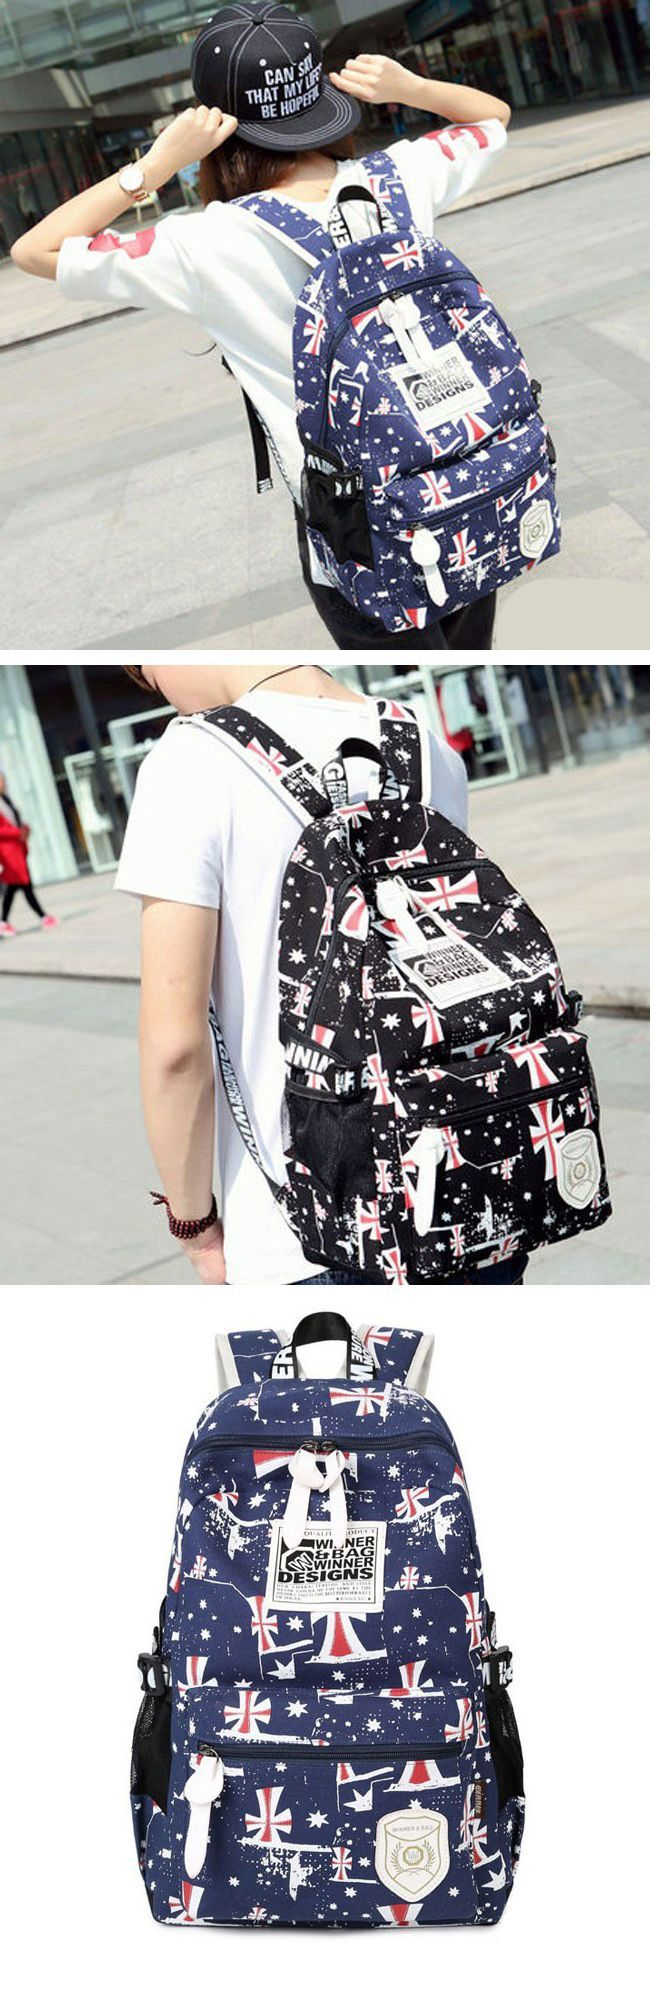 2017 Fashion Casual Printing School Bag Rucksack Travel Sport Backpack for Teenagers – Bagail – Pickpin